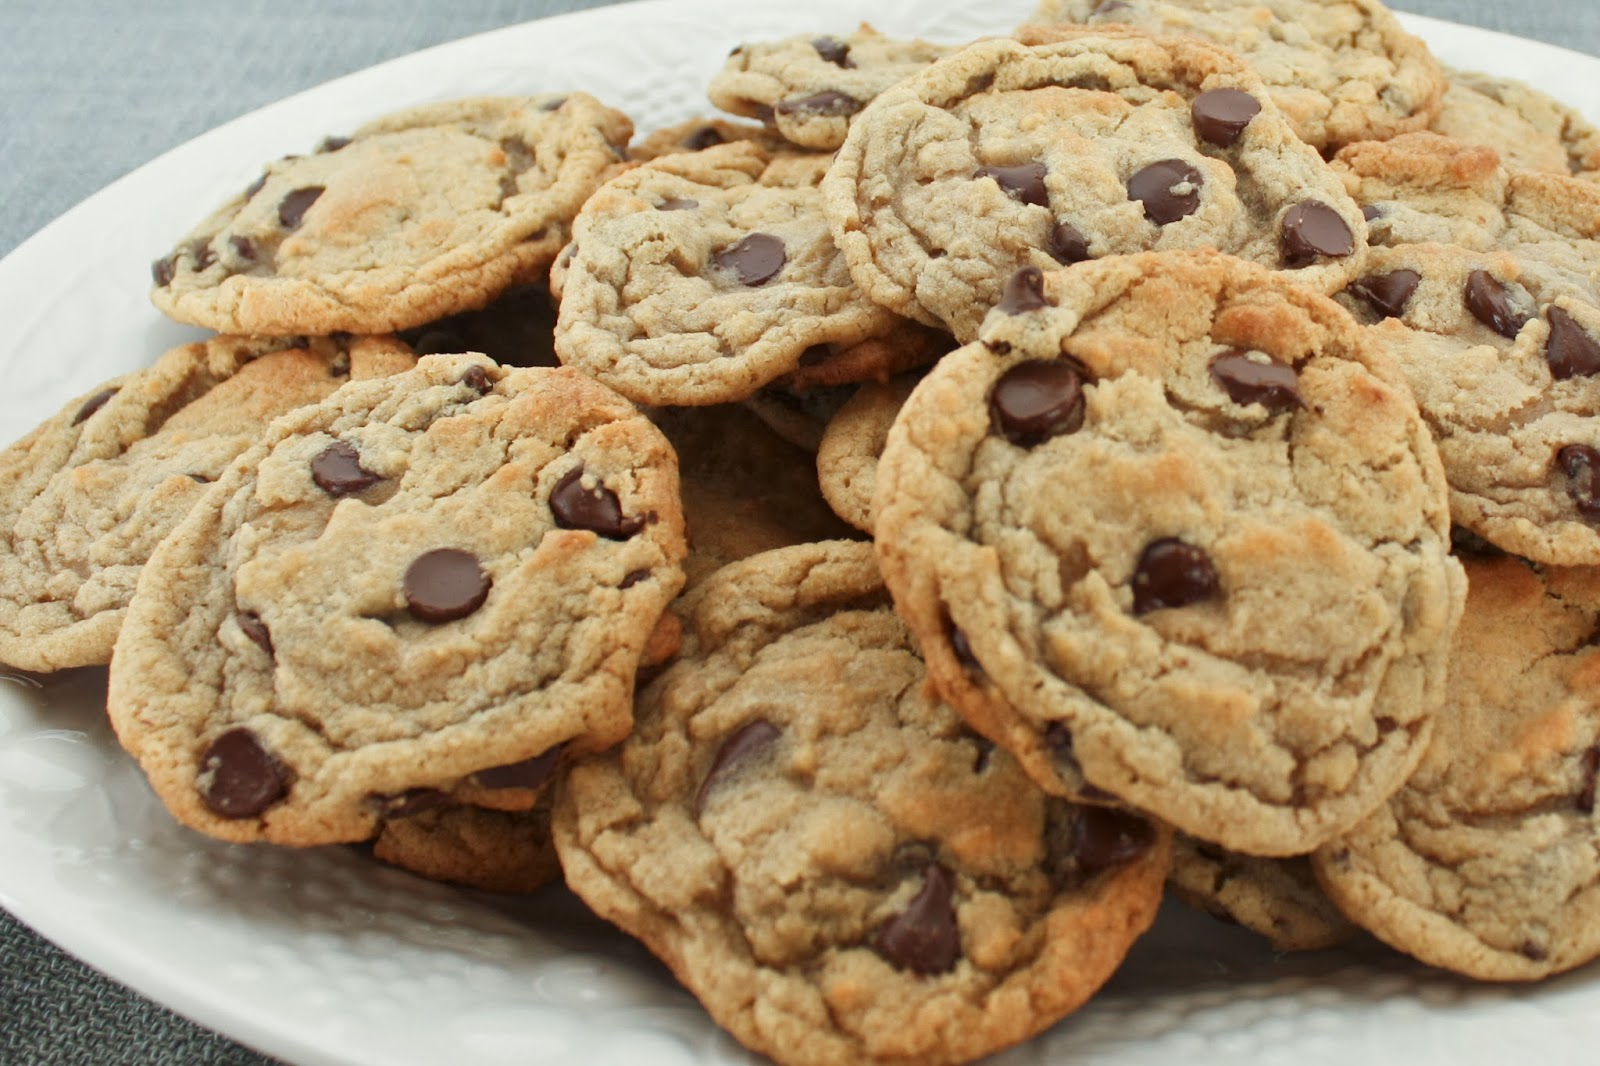 ... FAVORITE RECIPES: World's Best Chocolate Chip Cookies (Step-by-Step